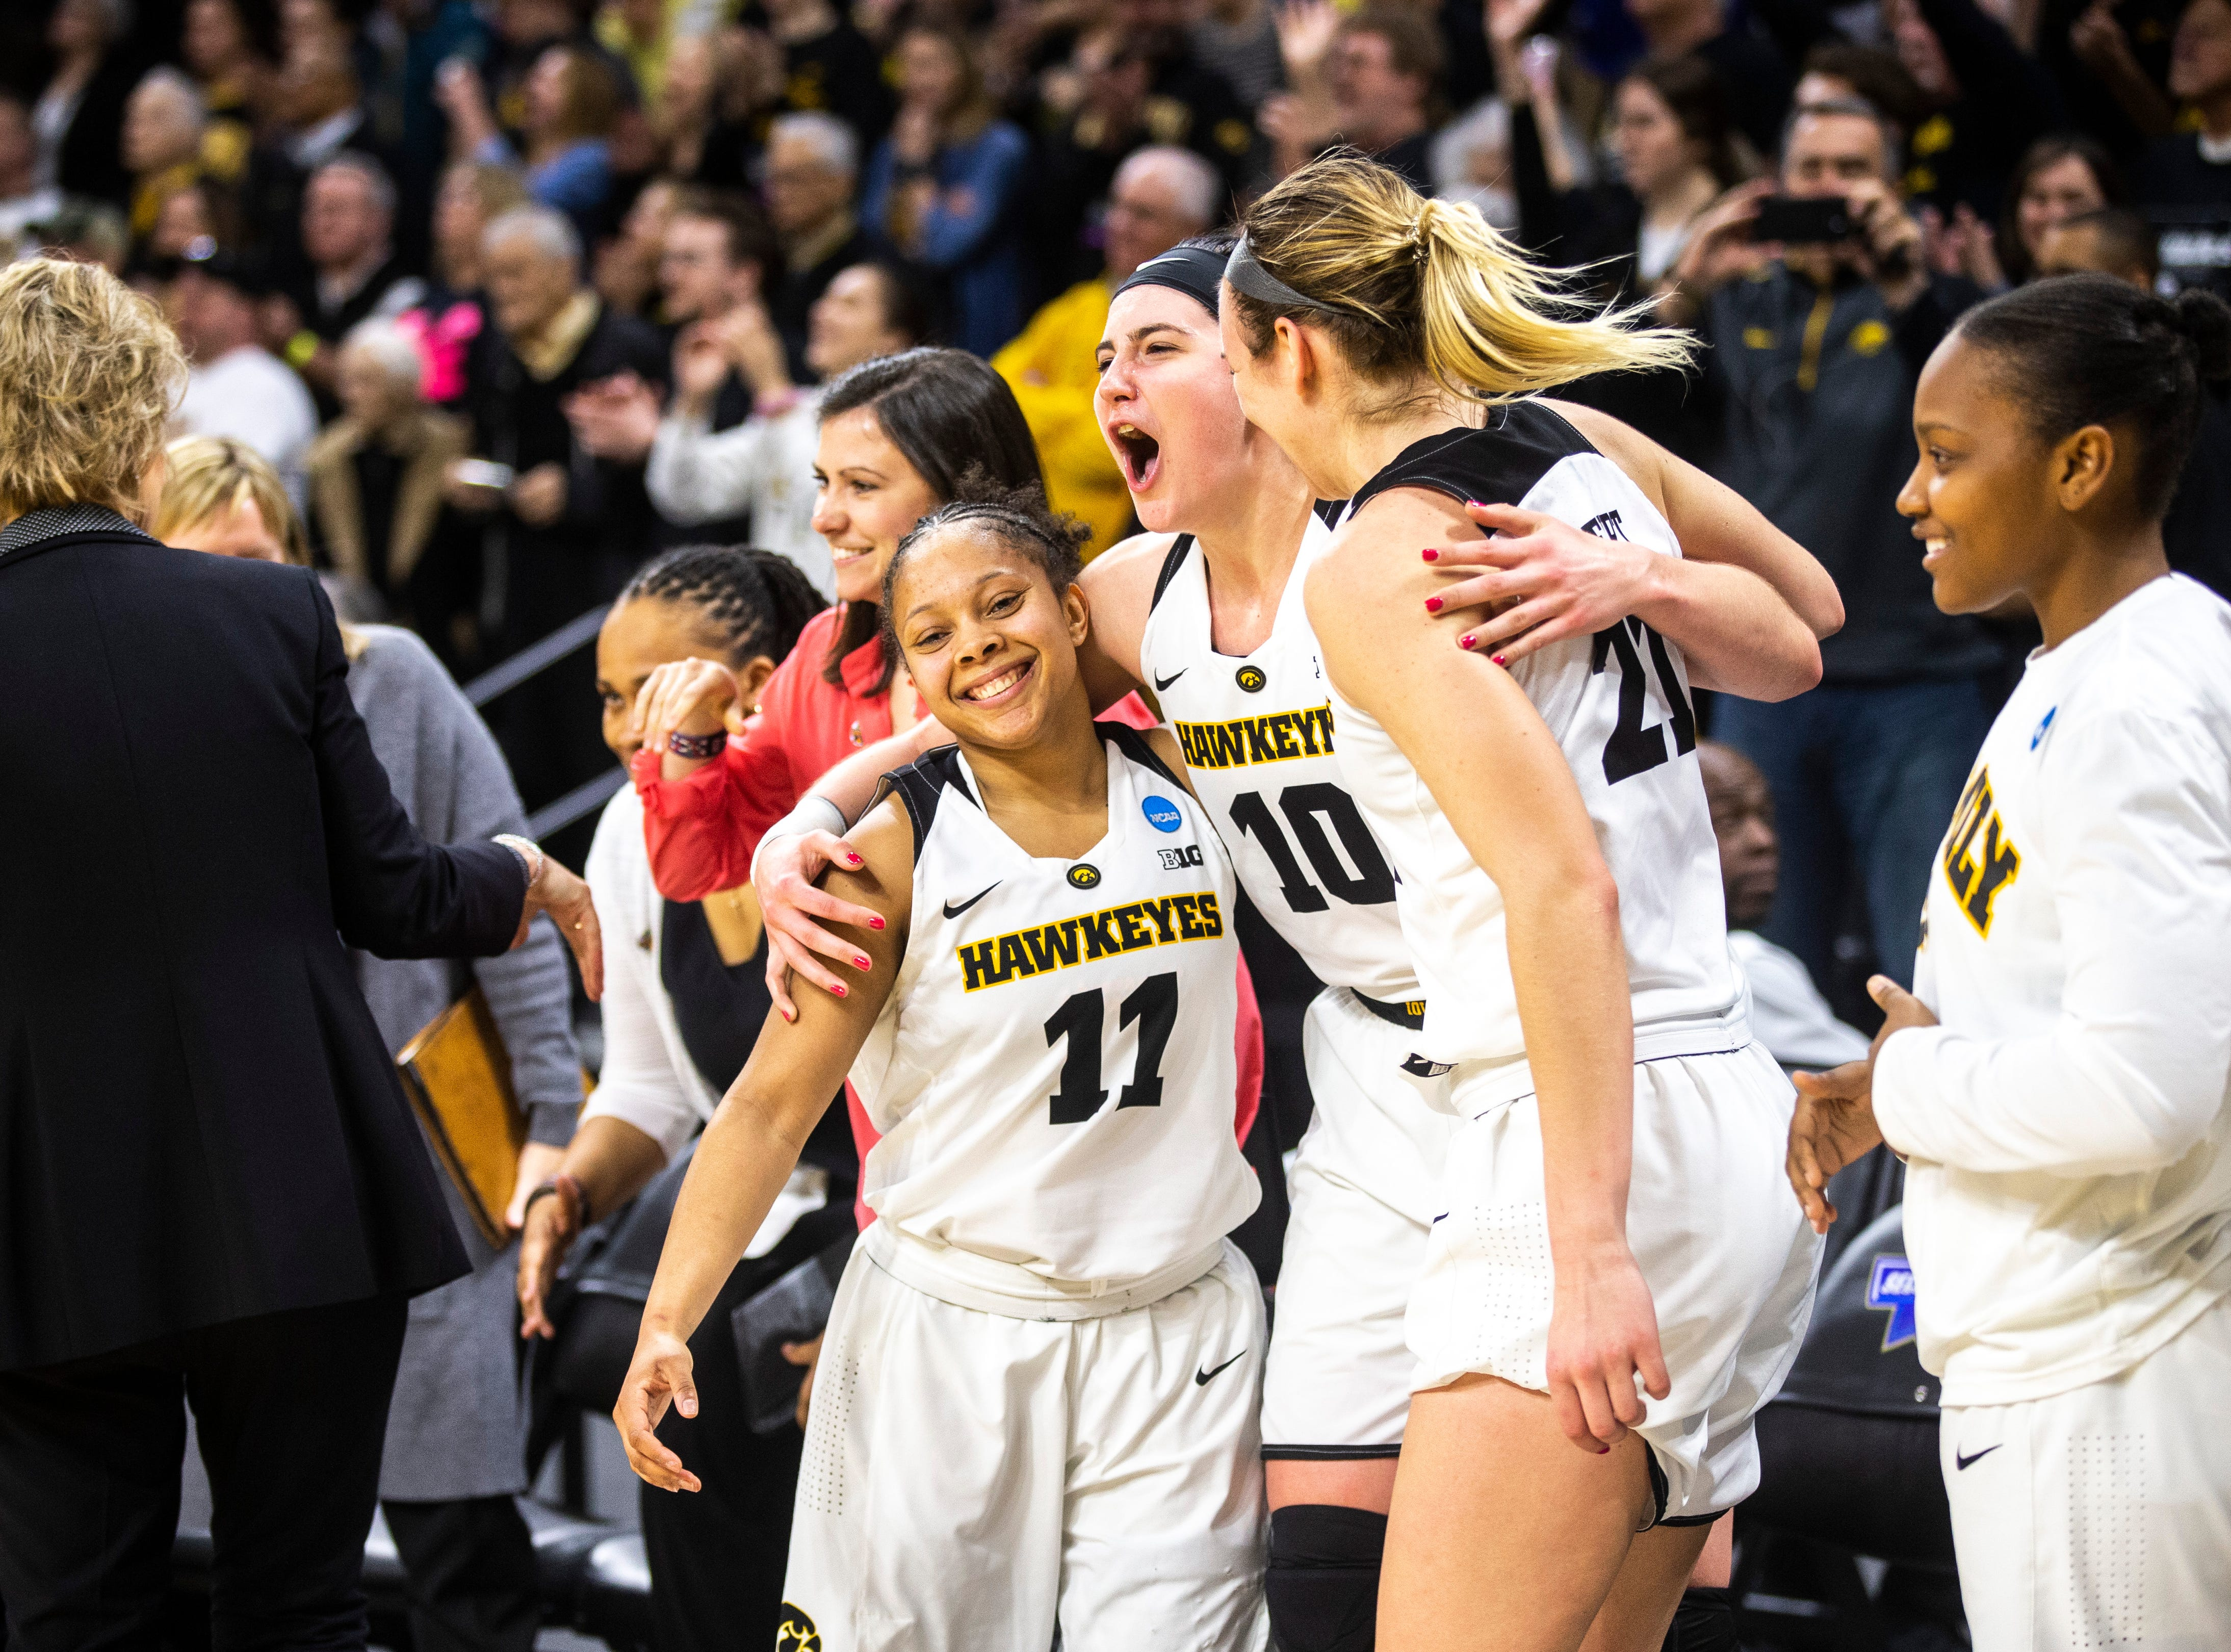 Iowa guard Tania Davis (11) celebrates with teammates Iowa center Megan Gustafson (10) and Iowa forward Hannah Stewart (21) during a NCAA women's basketball tournament second-round game, Sunday, March 24, 2019, at Carver-Hawkeye Arena in Iowa City, Iowa.